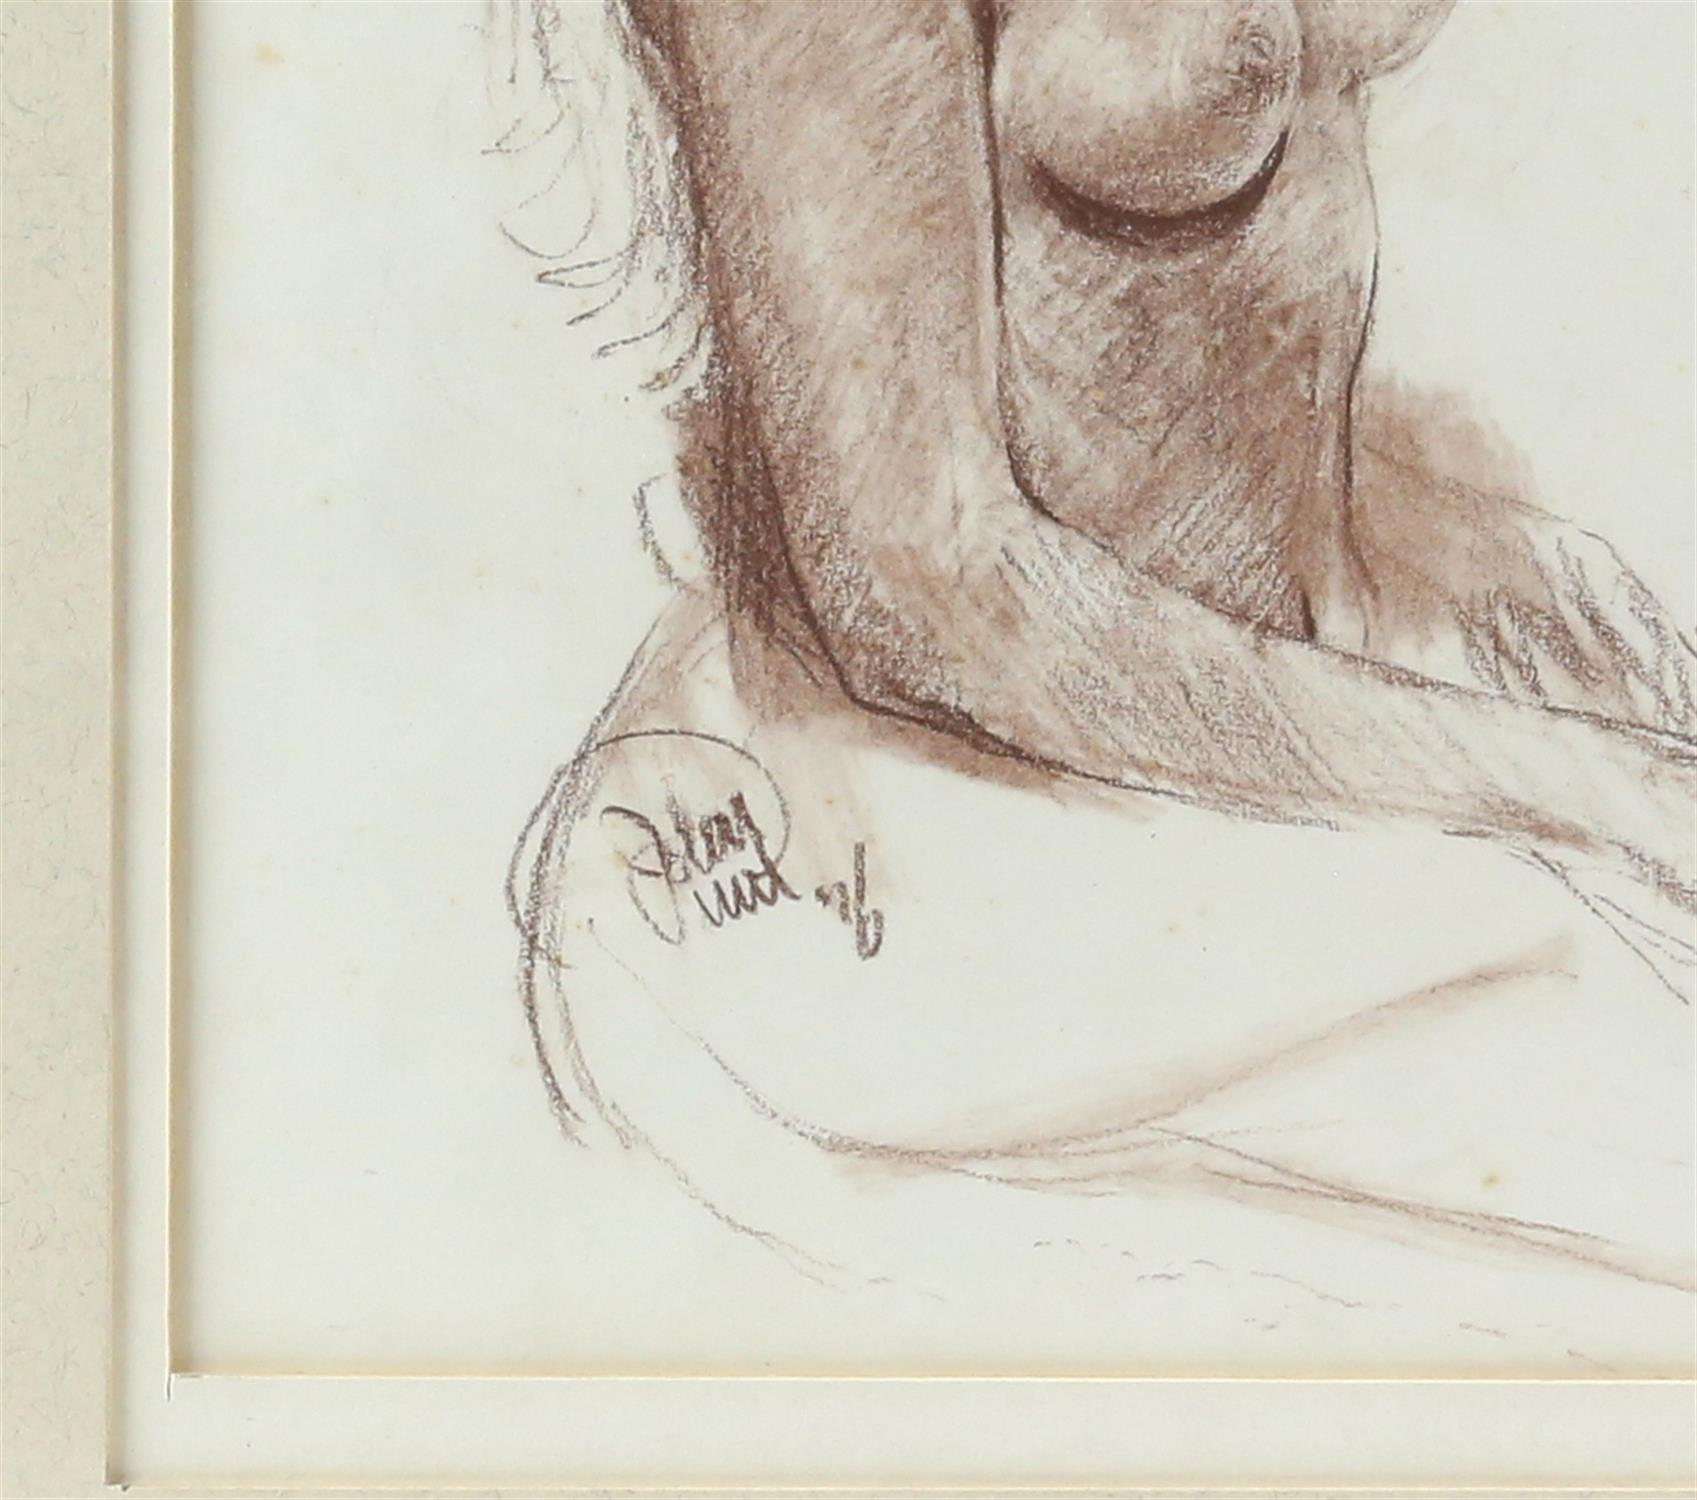 John Uht (British, b. 1924). 'Blonde Seated Nude'. Pastel 1976. Signed and dated lower left. - Image 3 of 3